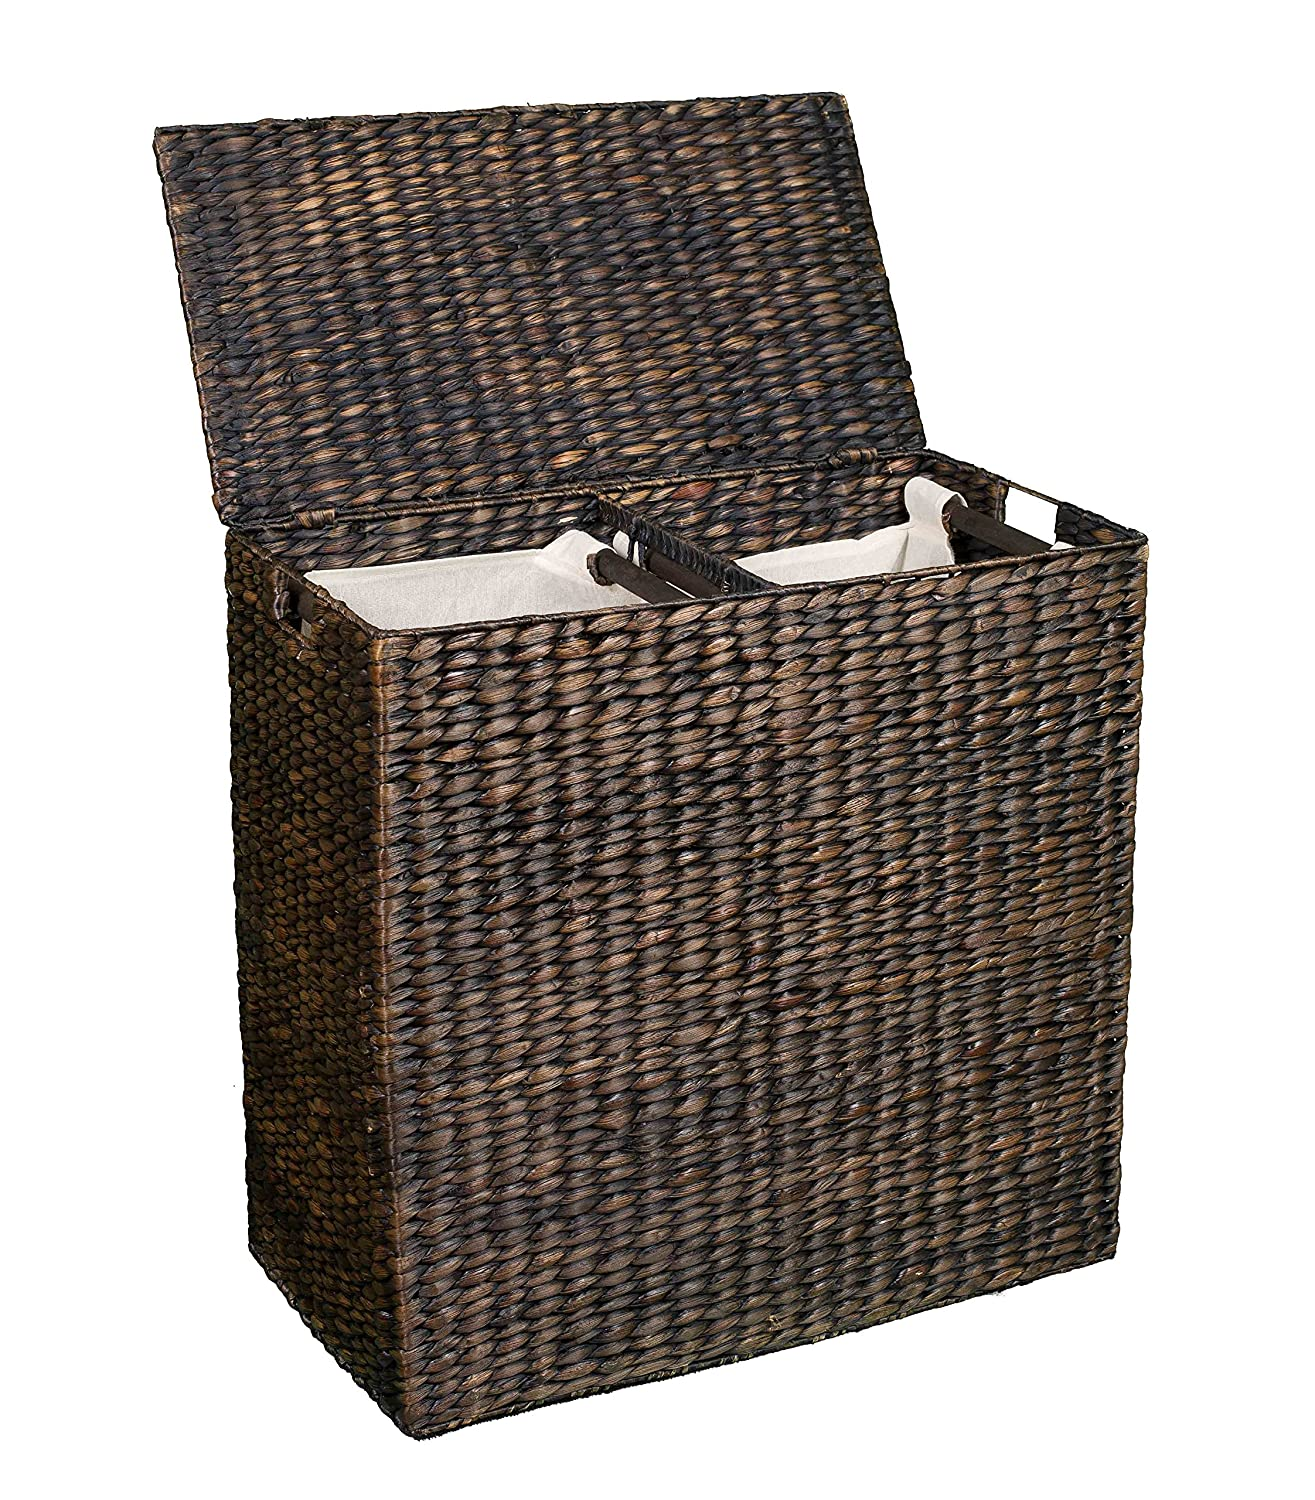 Amazoncom BirdRock Home Water Hyacinth Laundry Hamper Divided